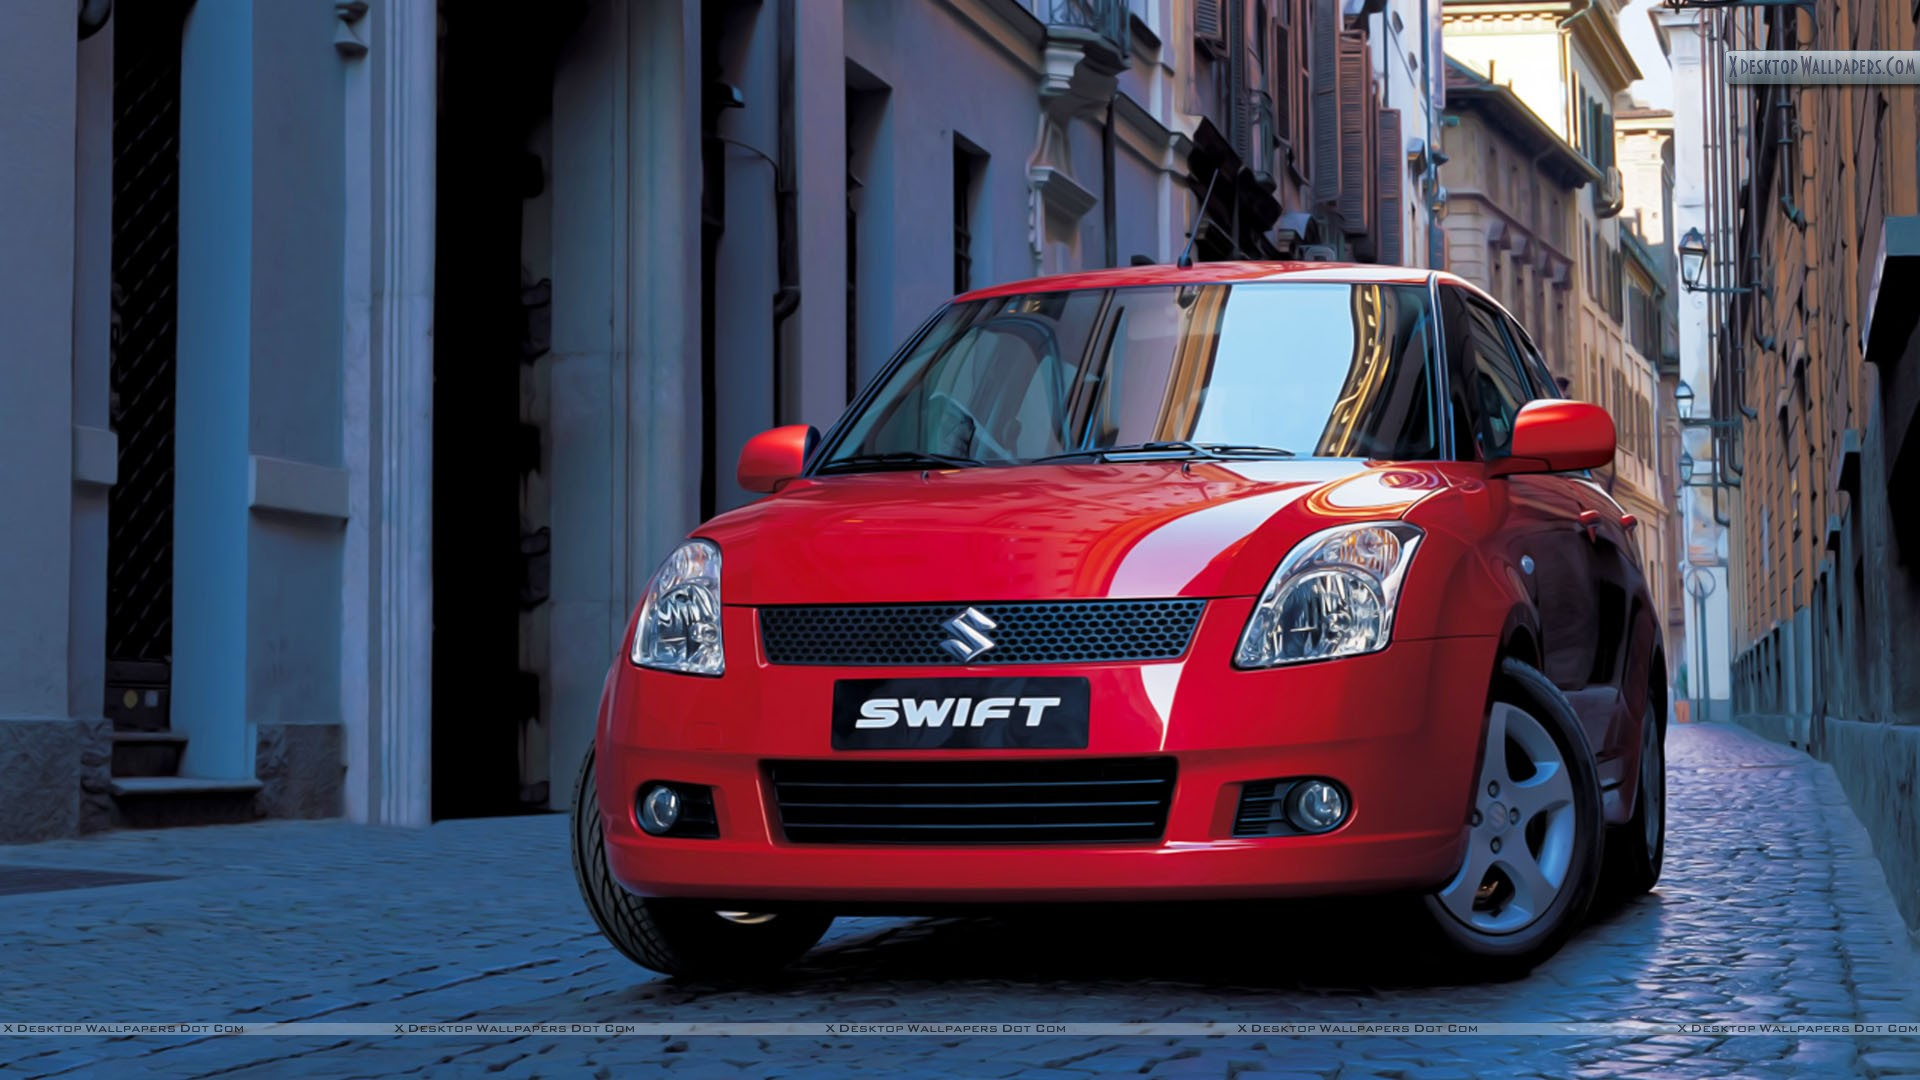 Suzuki swift wallpapers photos images in hd categories voltagebd Images